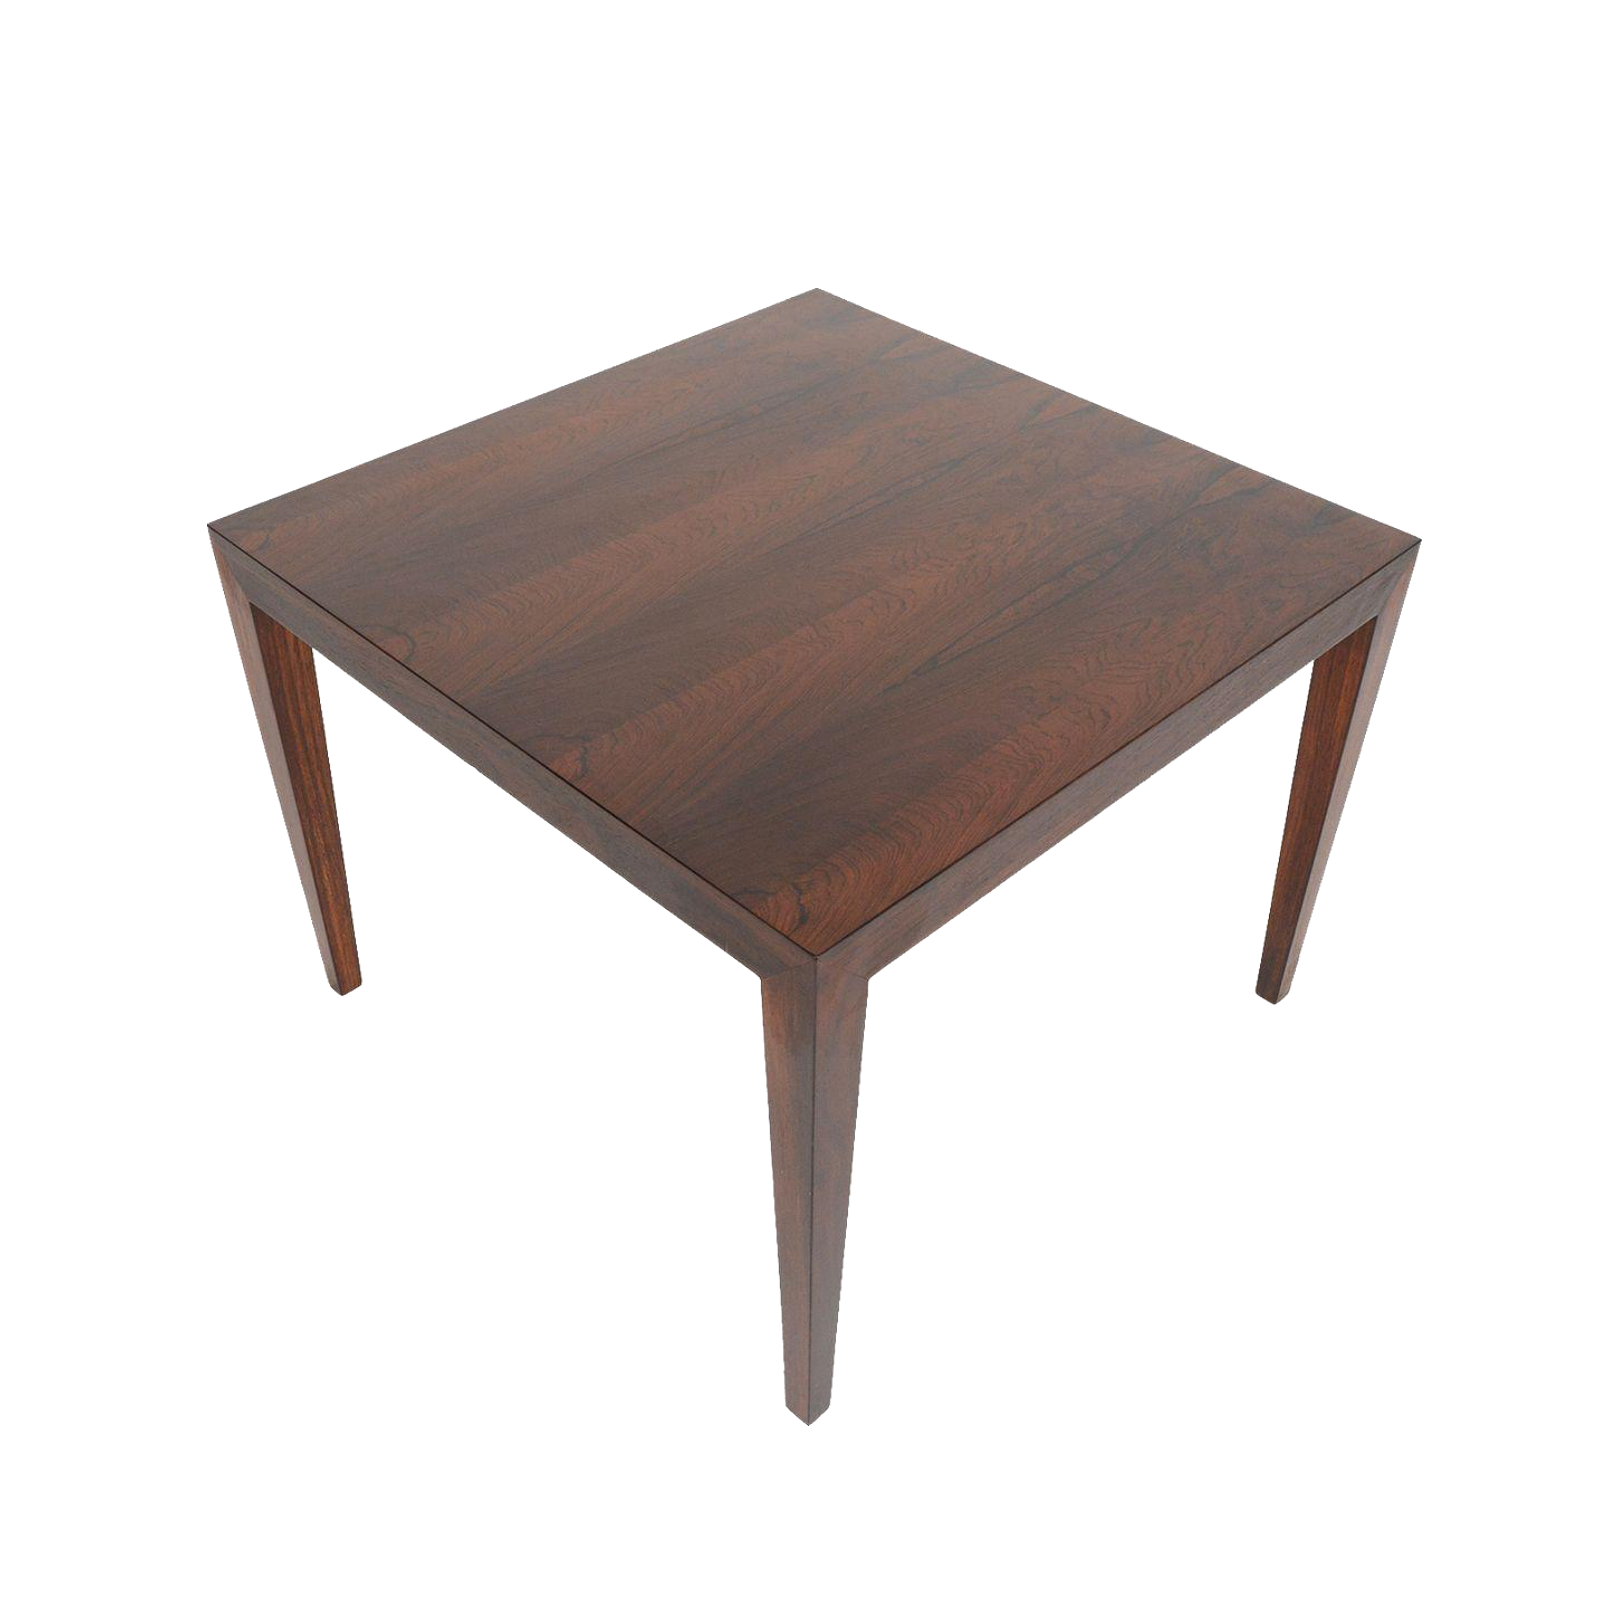 Severin hansen rosewood coffee table chairish for Table induction 71 x 52